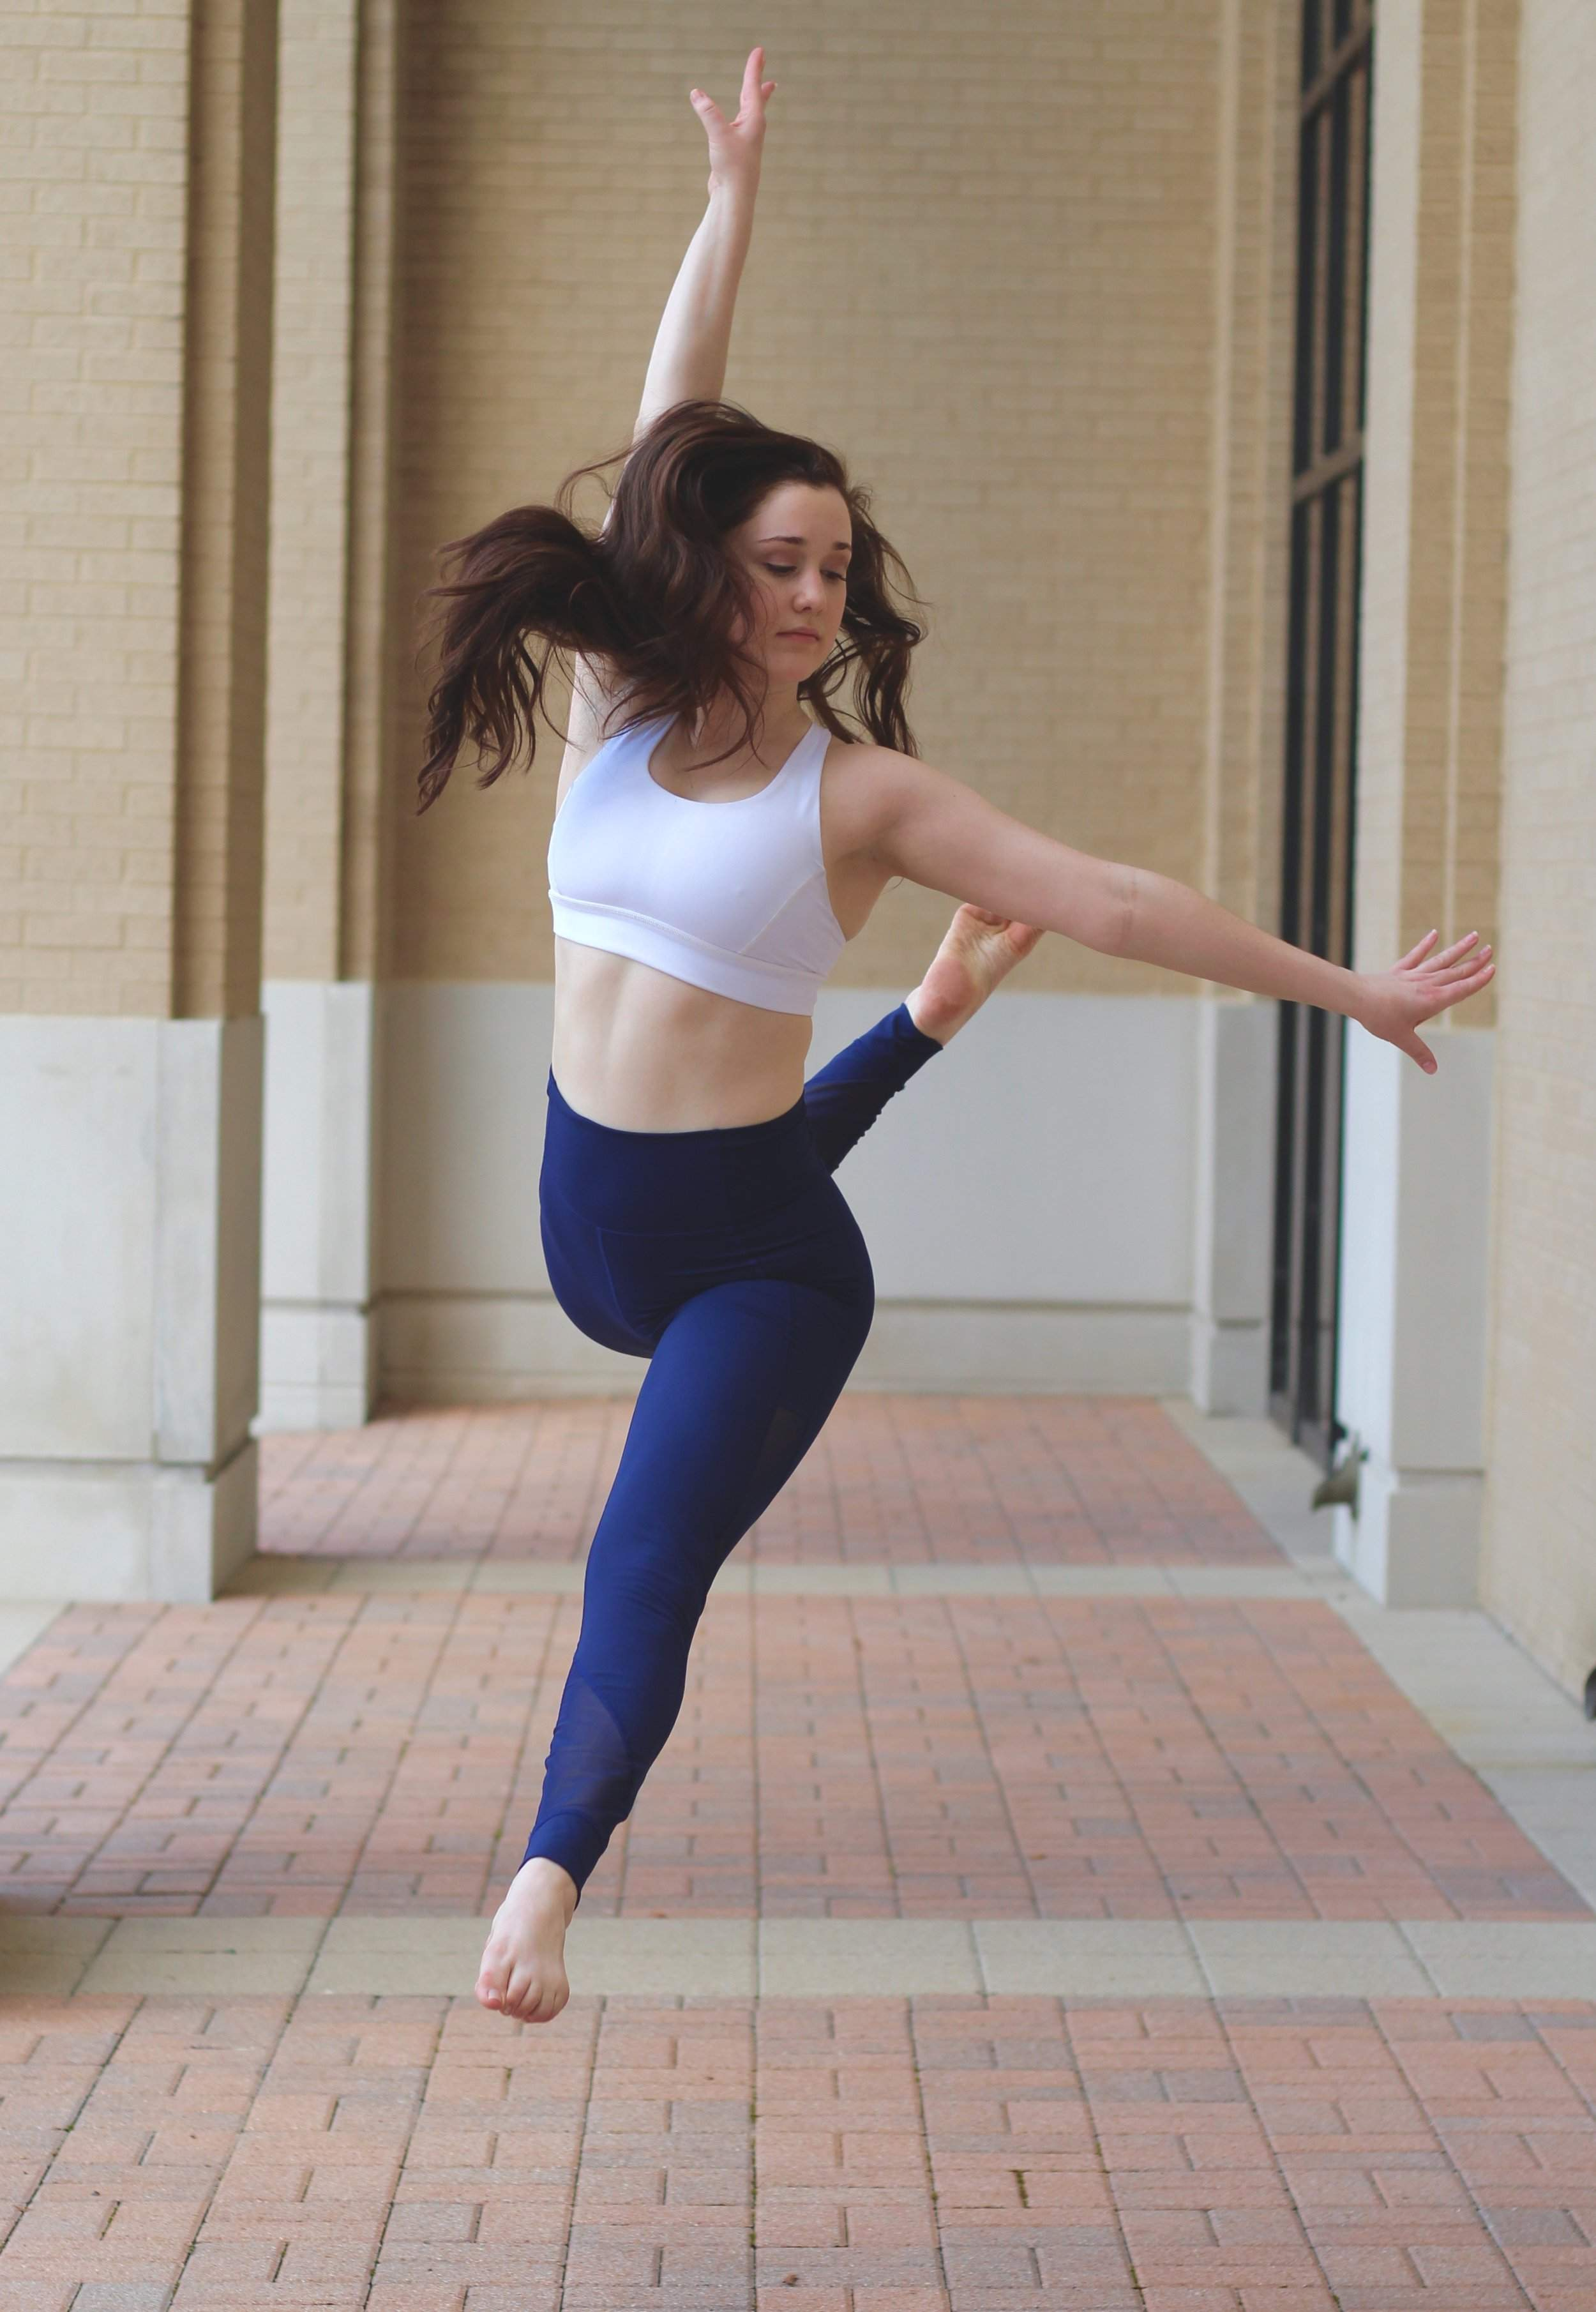 Alexandra leaping into the air in blue pants and white top